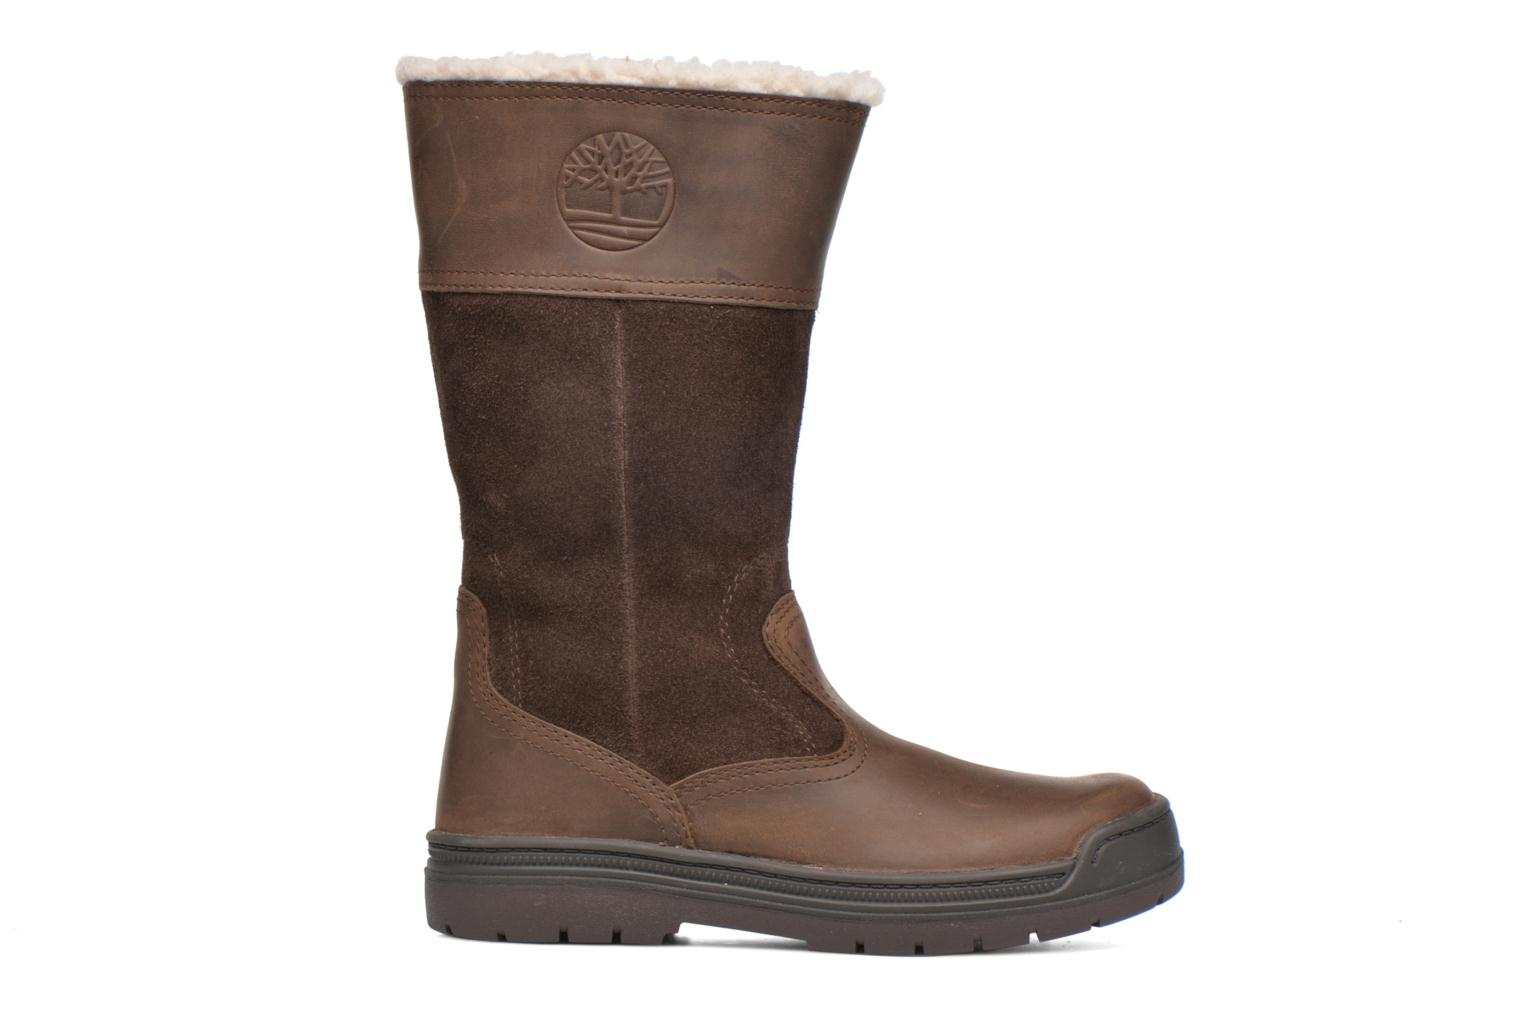 Ramble Wild Tall Boo Medium Brown